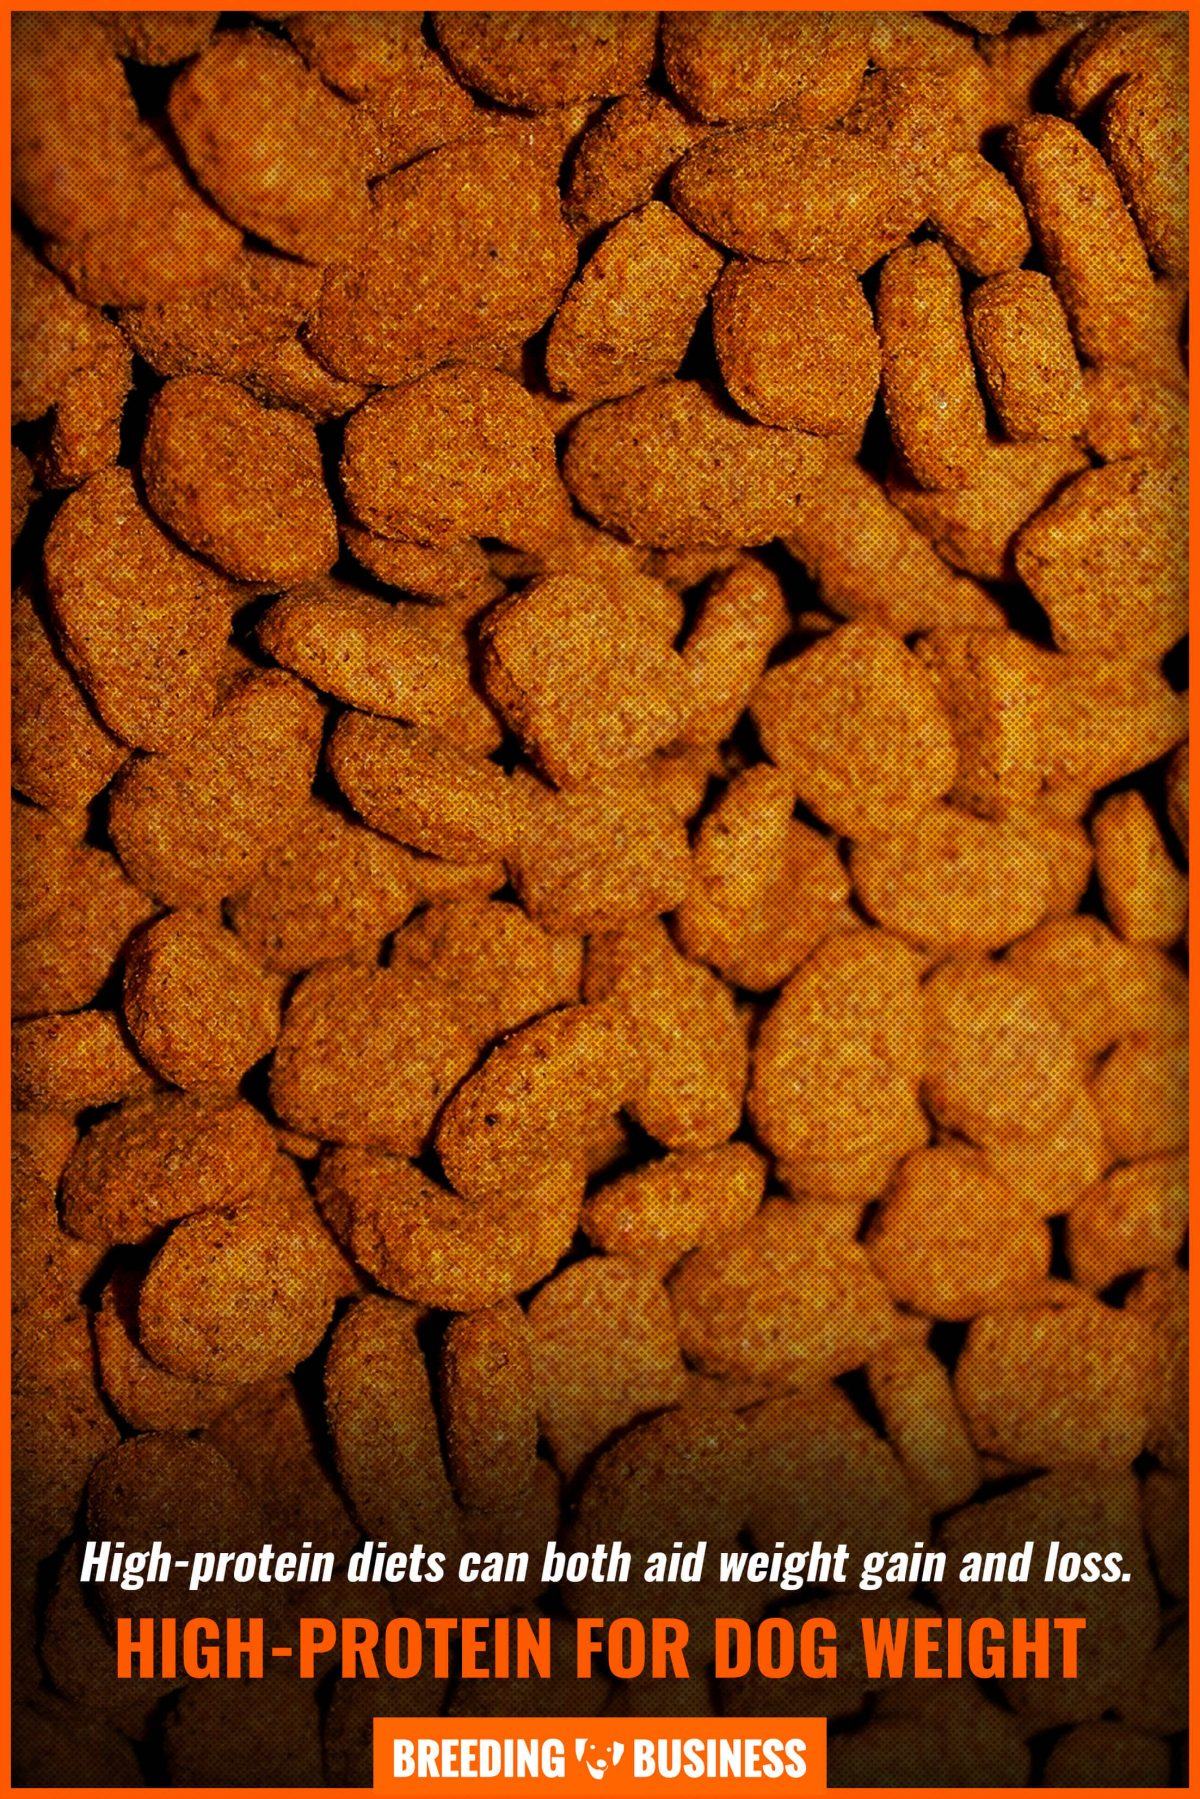 high-protein for dog weight